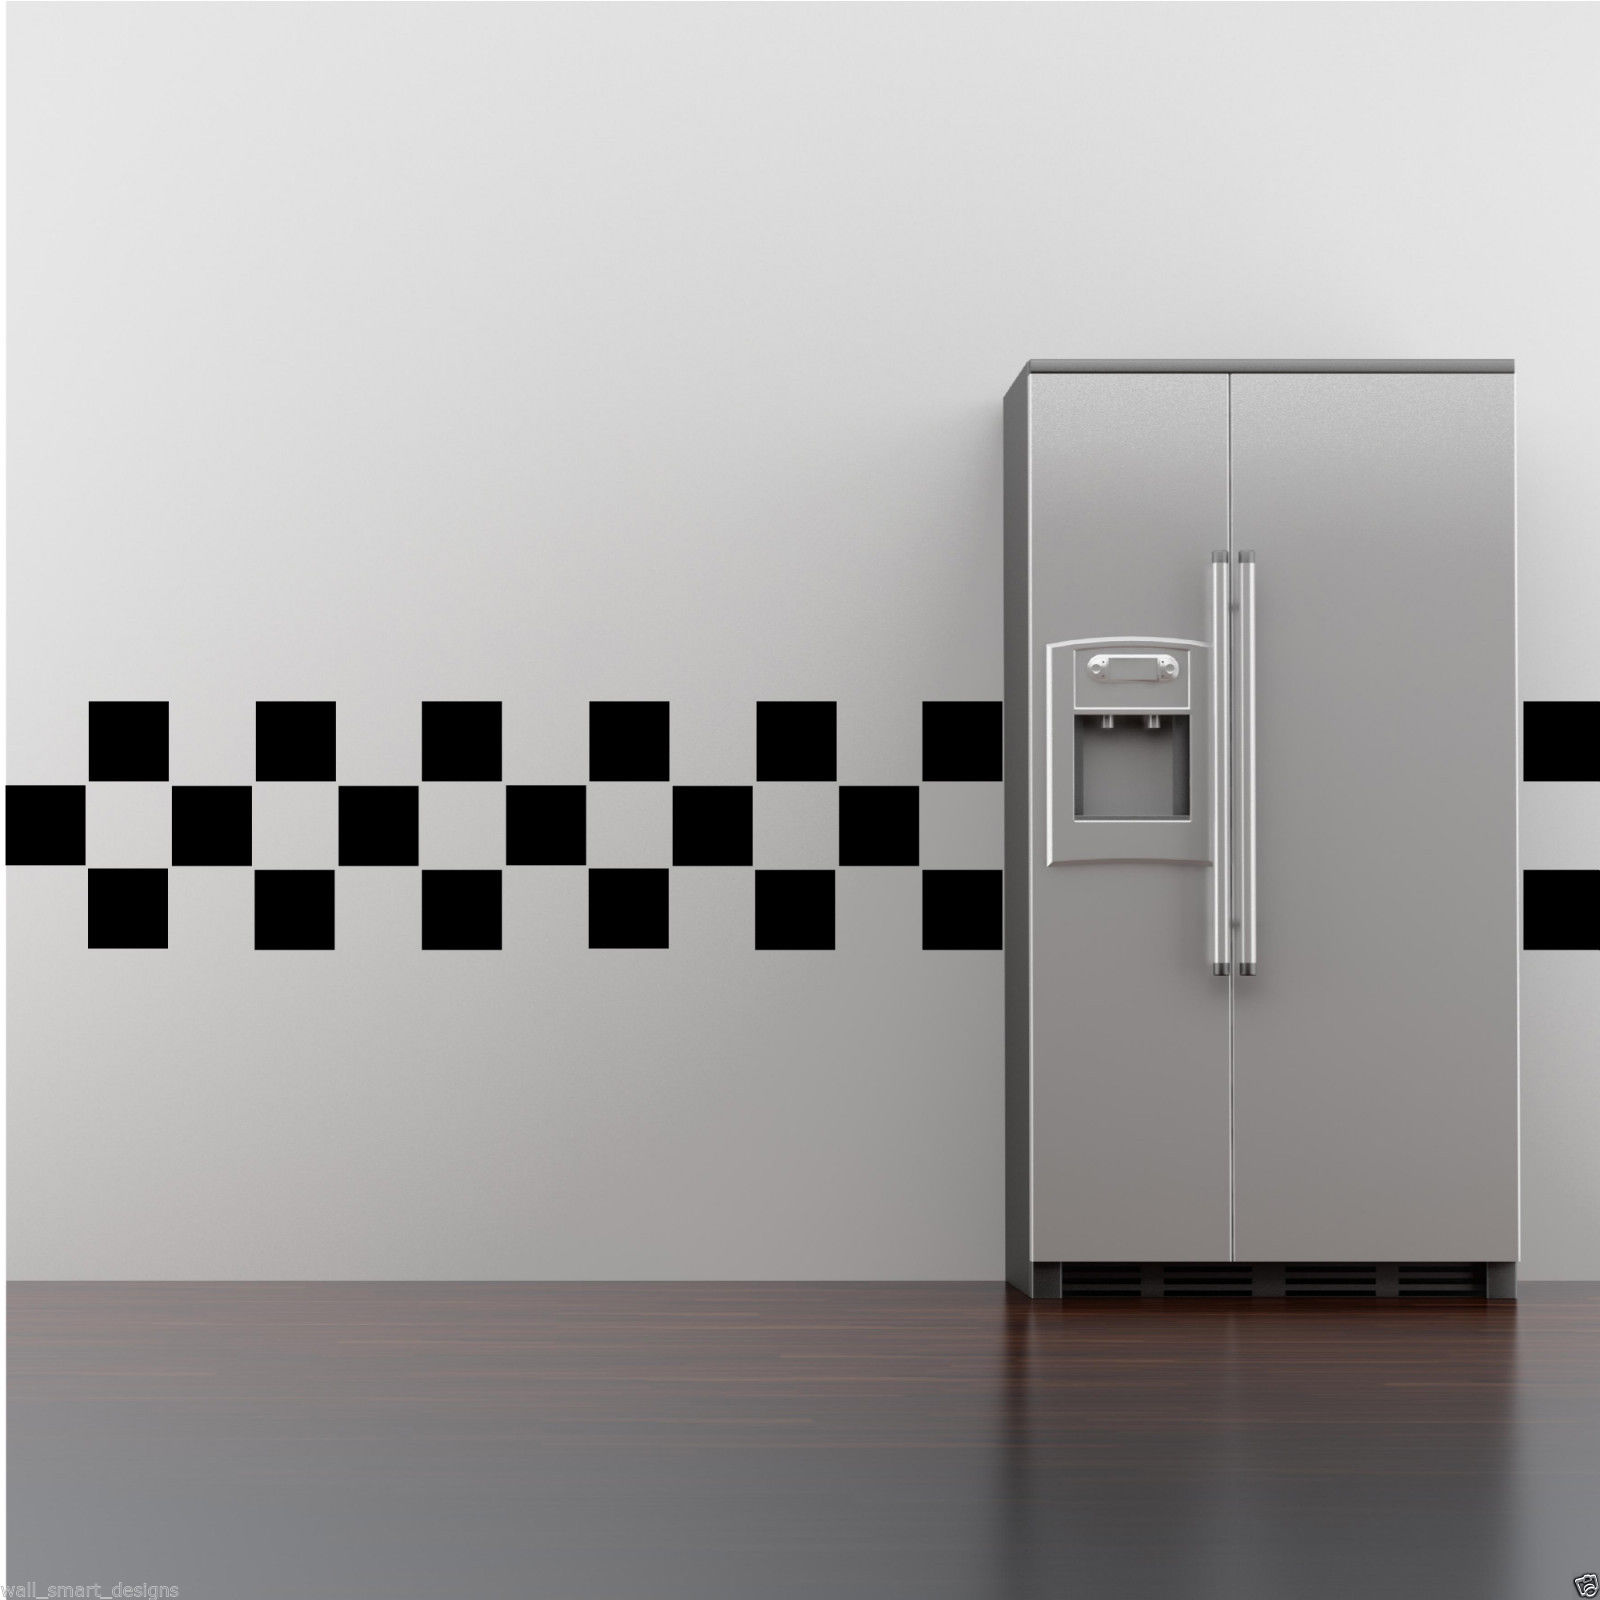 30 wall art tile stickers fake bathroom kitchen tiles 4 034 x4 034